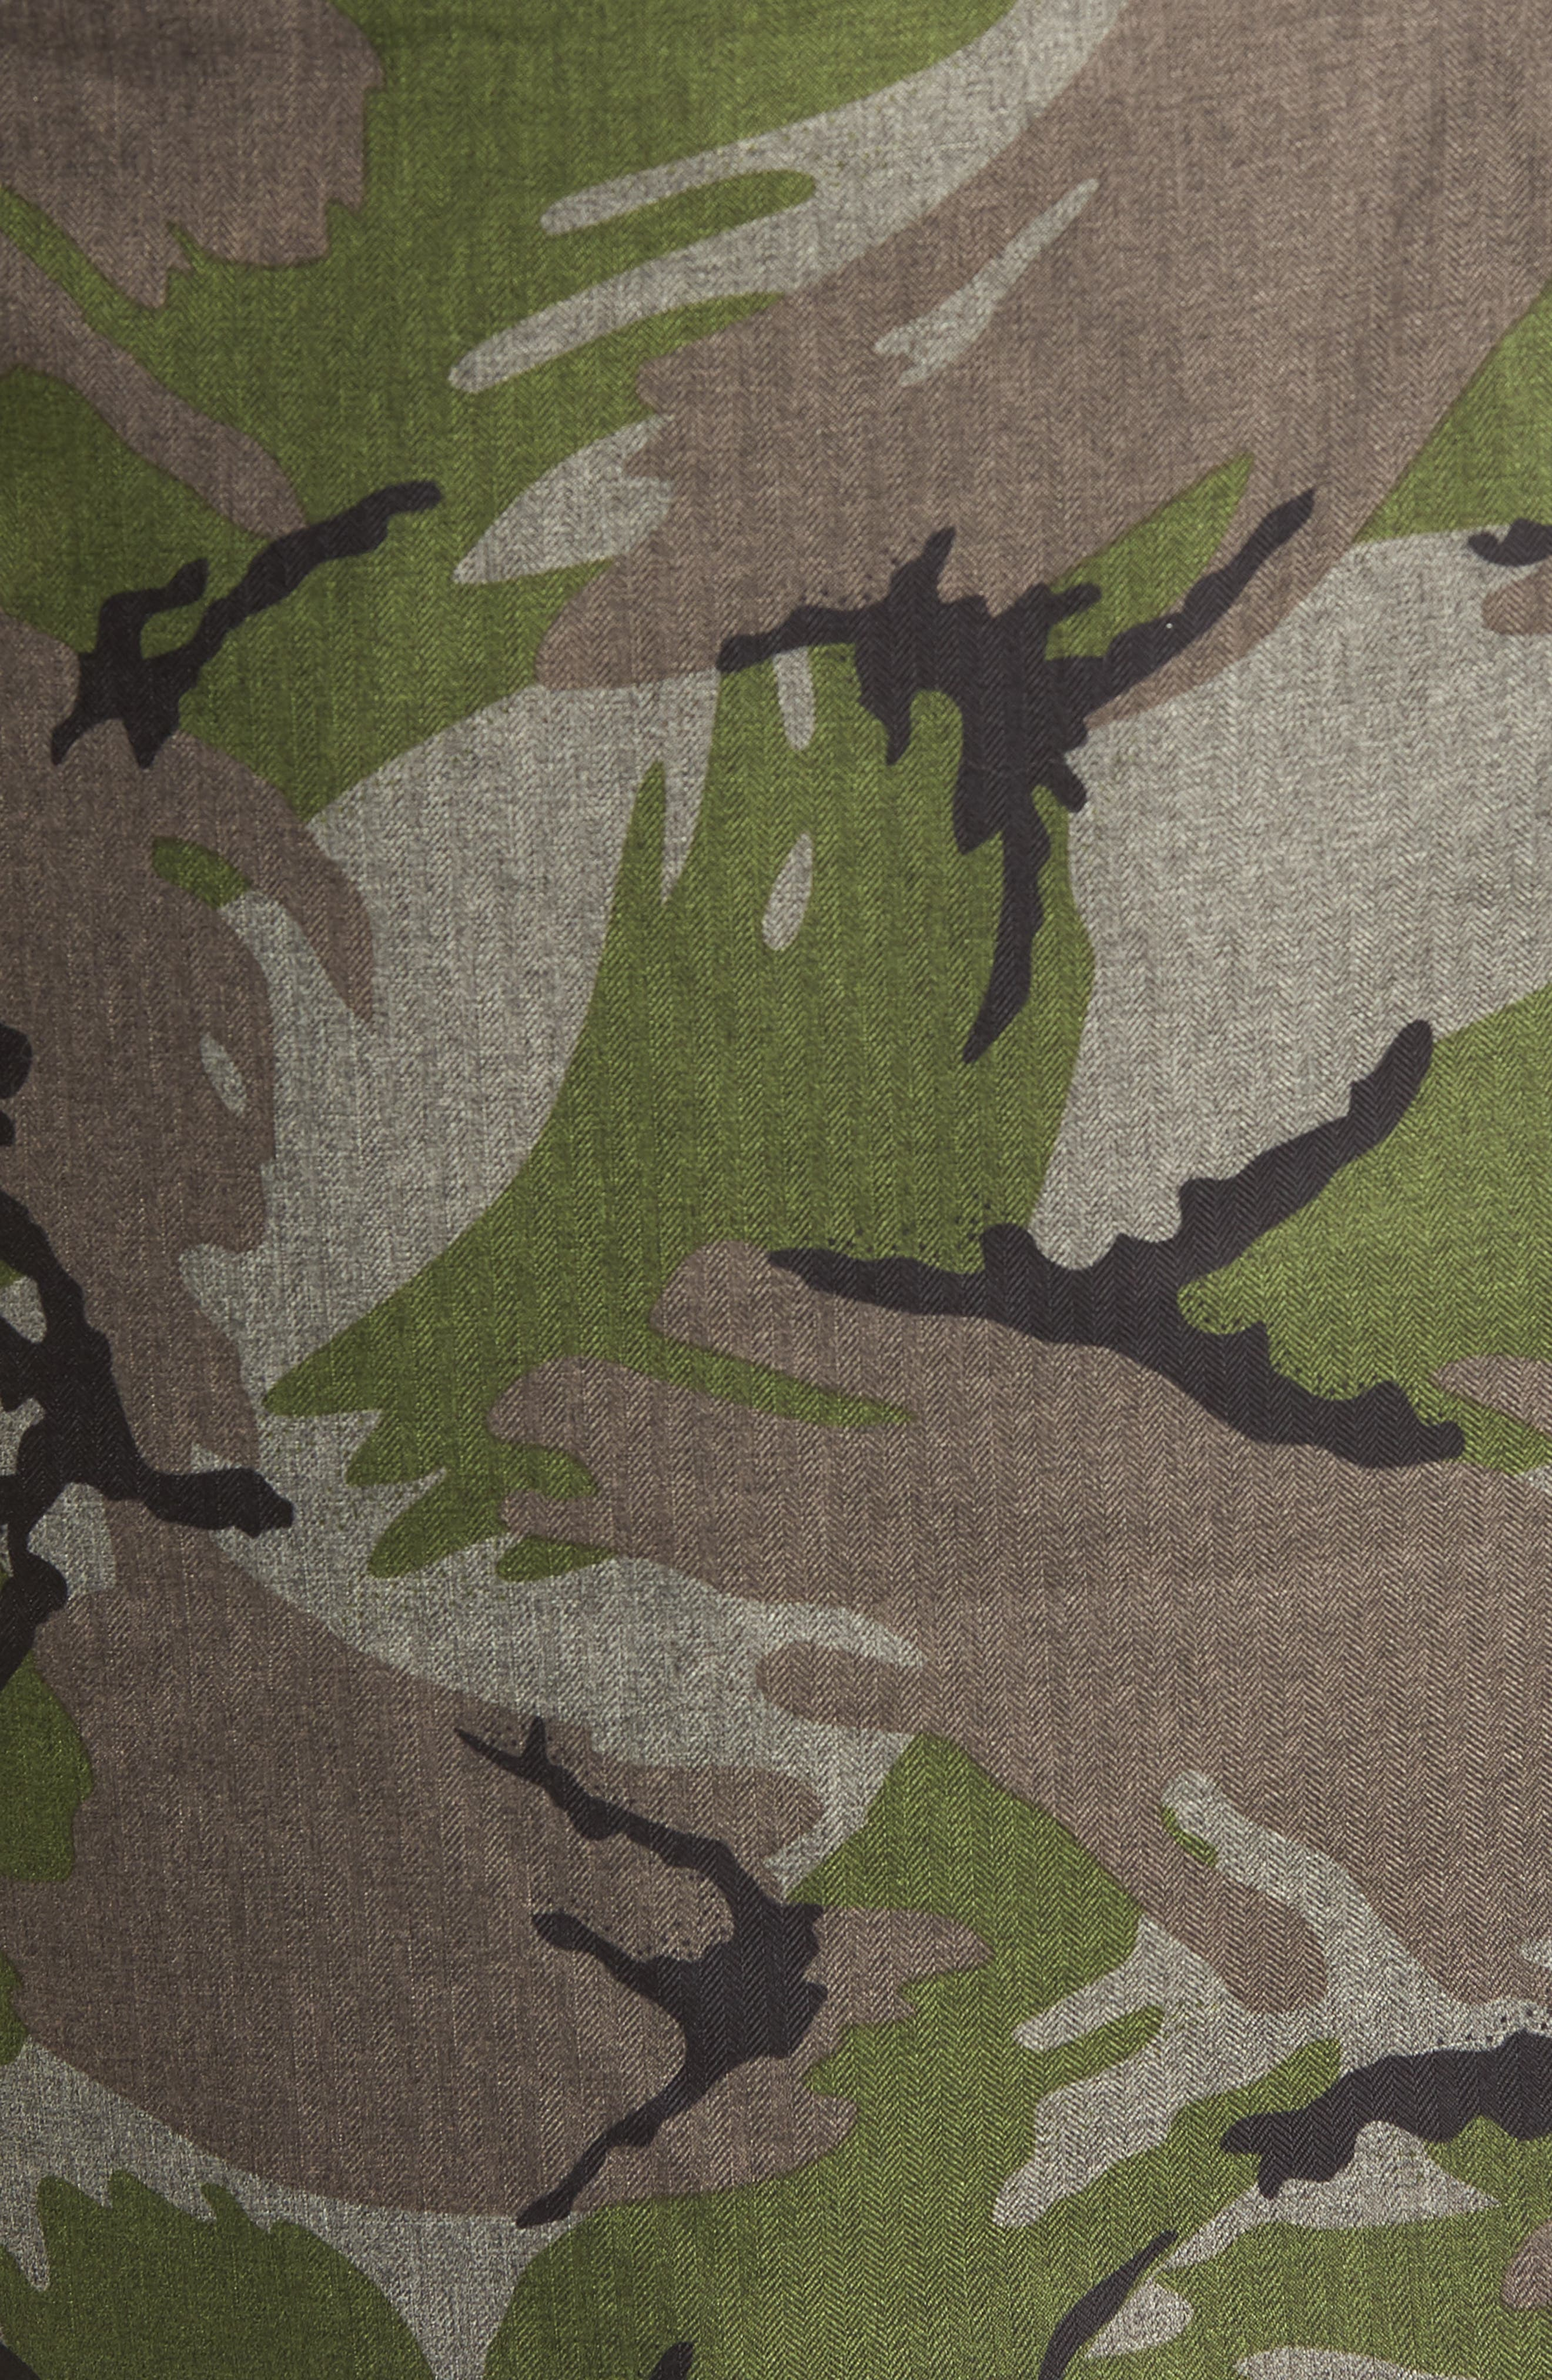 Outer Boroughs 3-in-1 TriClimate<sup>®</sup> Waterproof Jacket with Faux Fur Trim,                             Alternate thumbnail 6, color,                             Burnt Olive Green Disrupt Camo